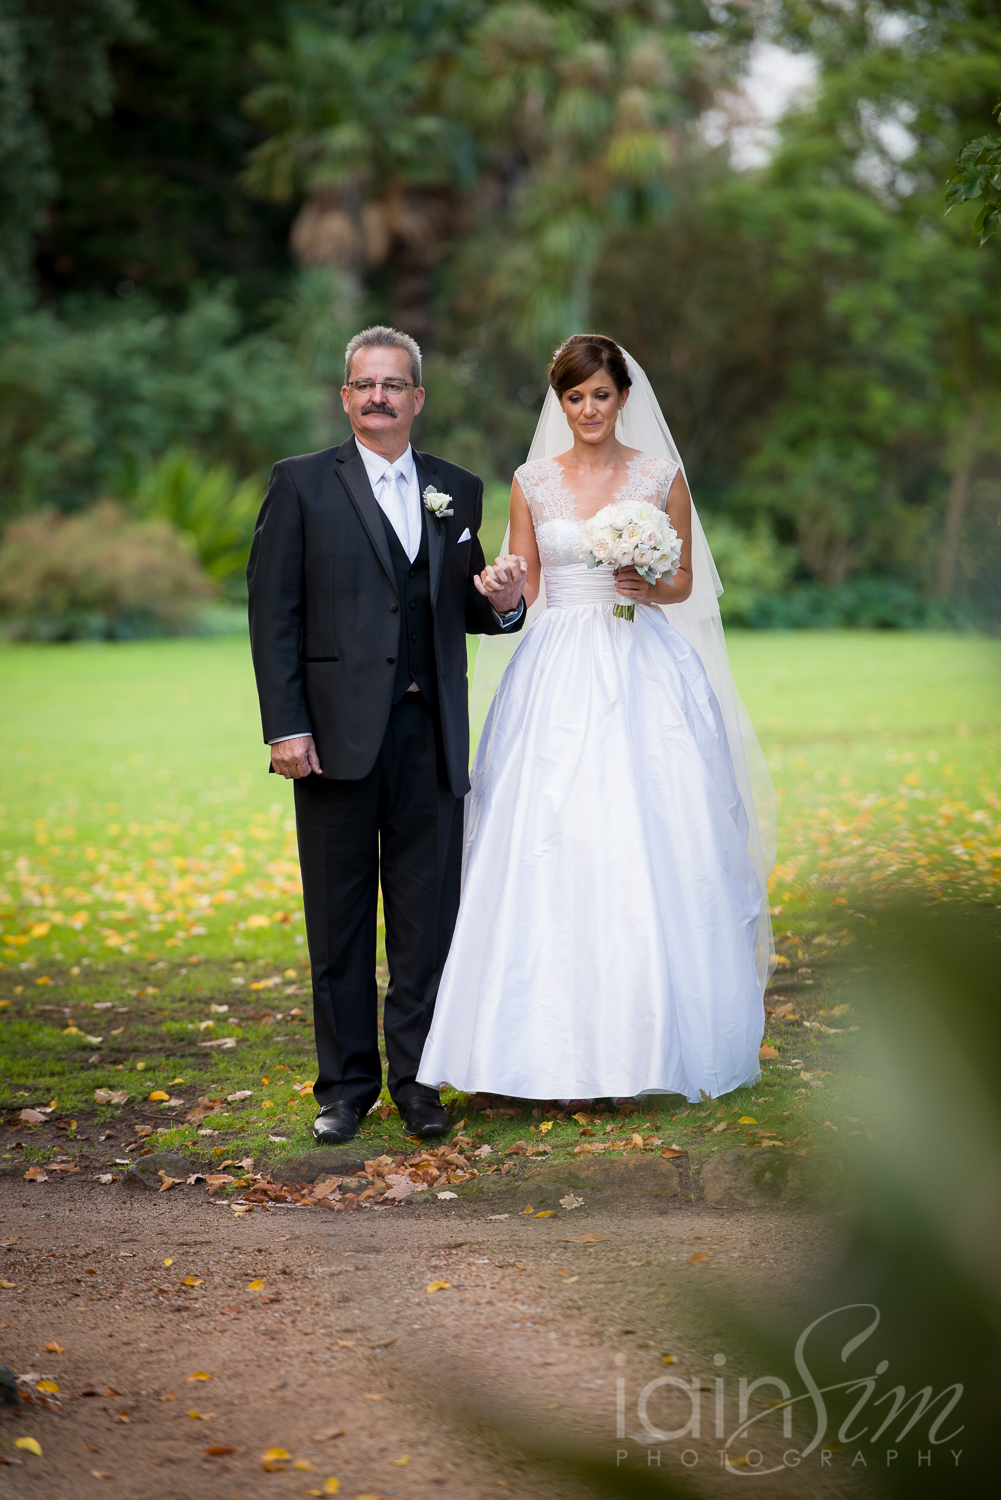 wpid-Katherine-and-Marks-RipponLea-Wedding-by-Iain-Sim-Photography_013.jpg